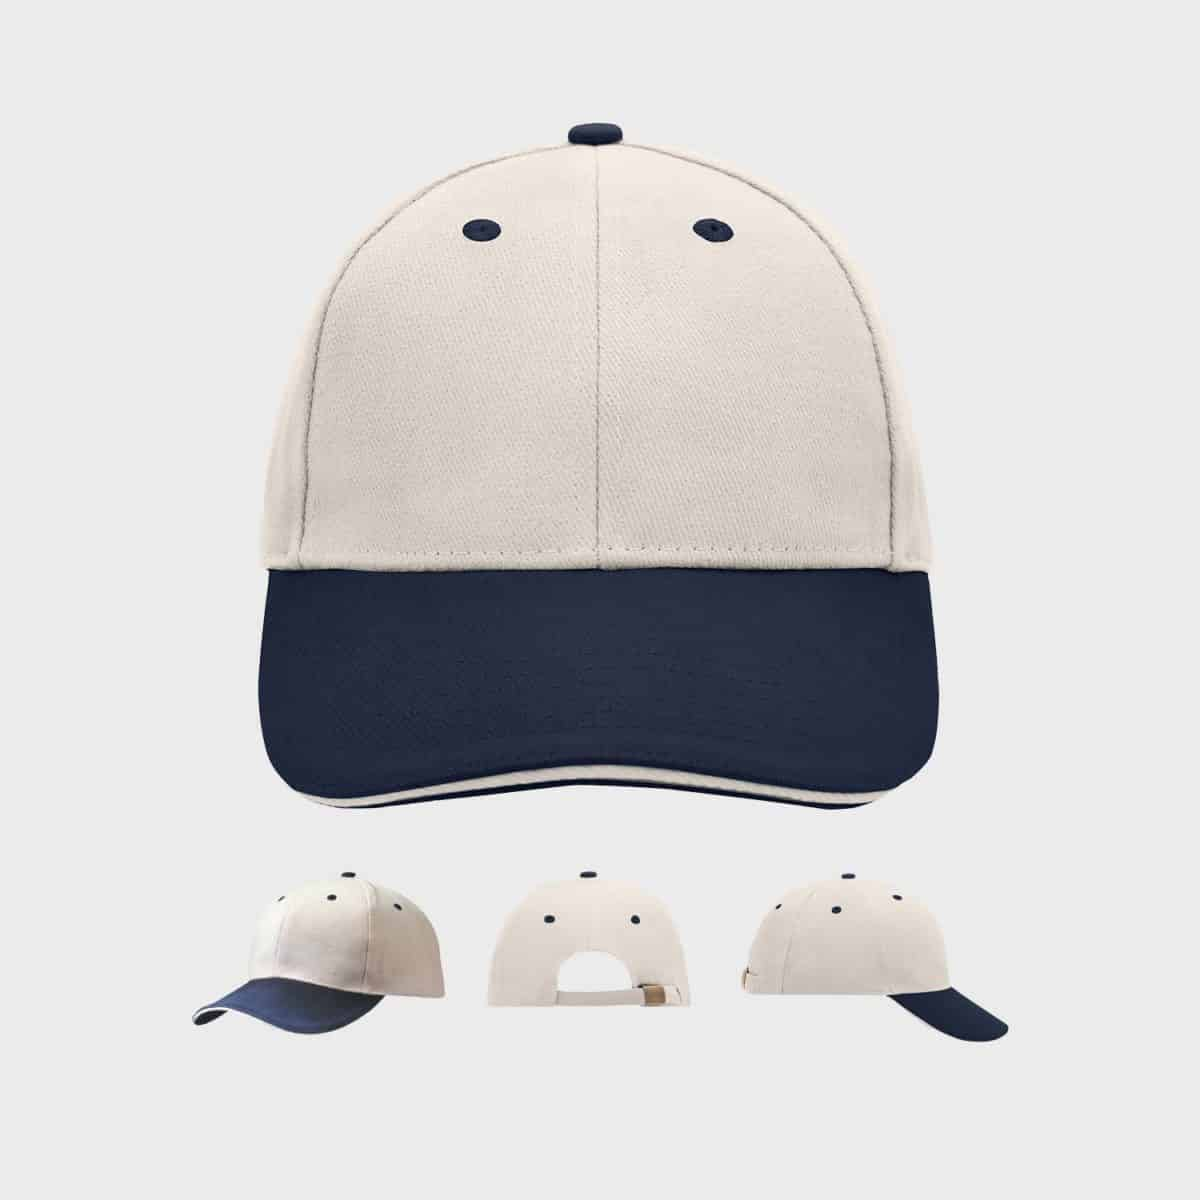 6-panel-basic-sandwich-cap-unisex-navy-beige-kaufen-besticken_stickmanufaktur